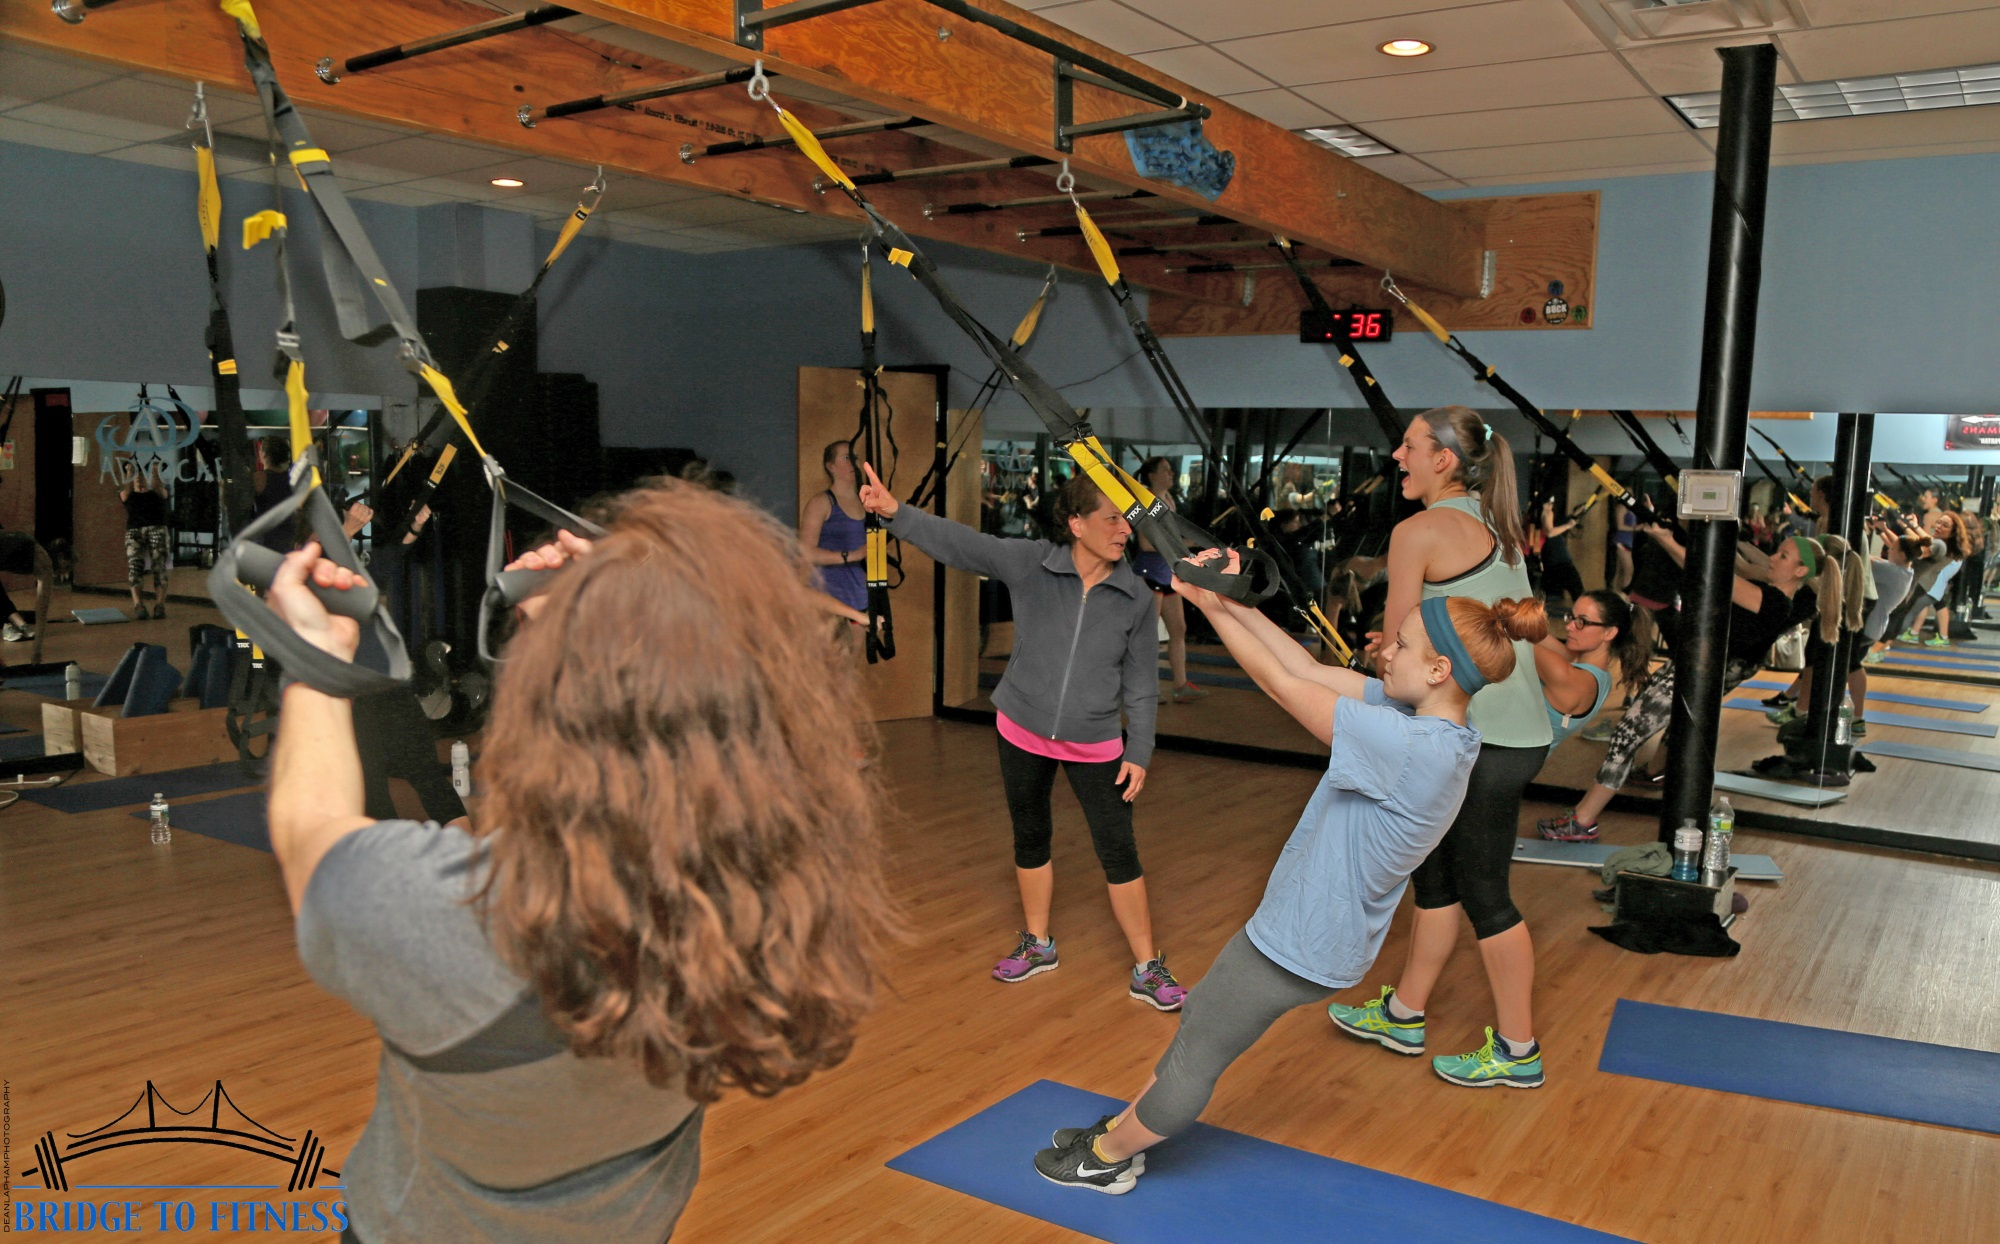 Exercise in Newport RI at BridgetoFitness.com